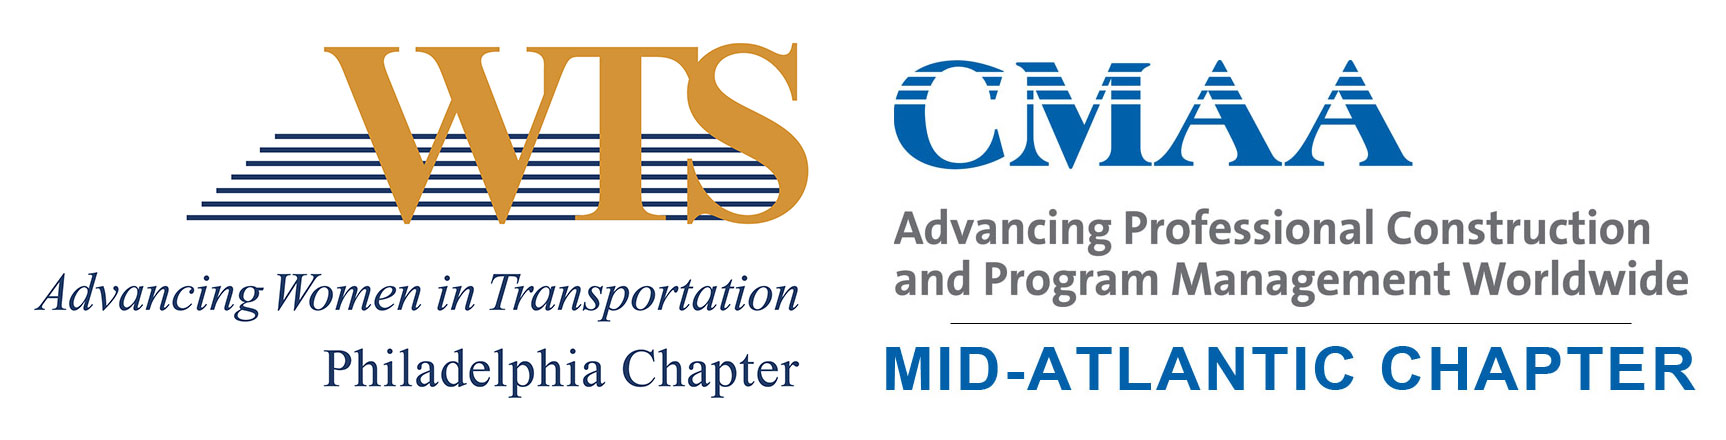 WTS Philadelphia and CMAA Mid-Atlantic Chapter Joint Event